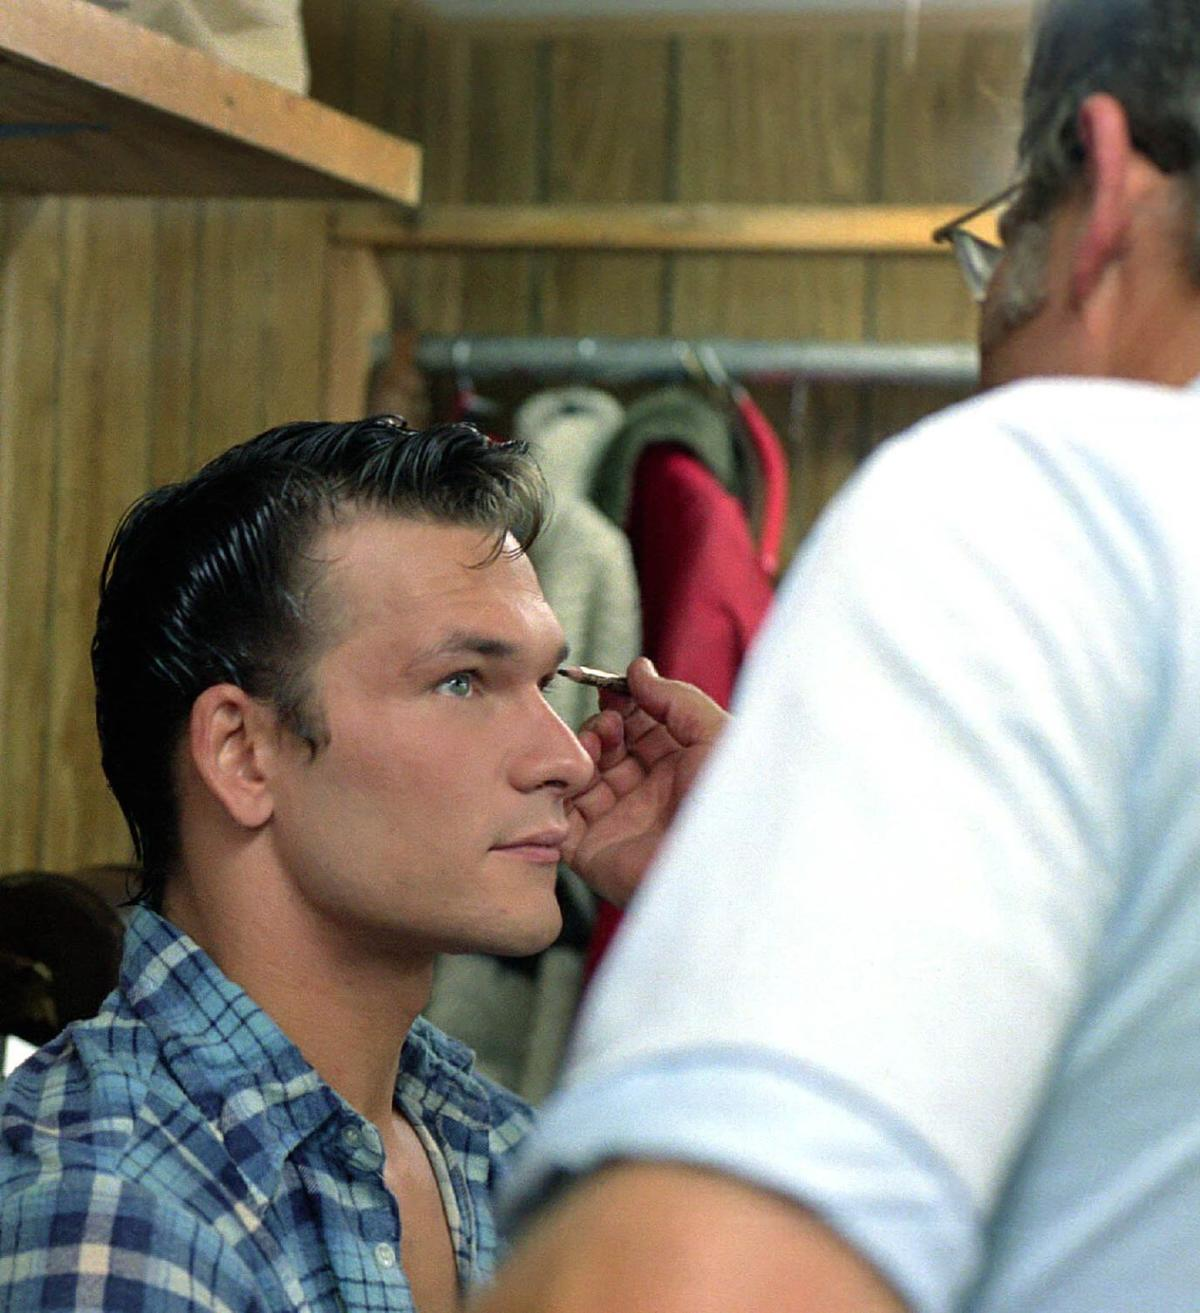 Aaa Com Insurance Quote: Explore The Locations Where 'The Outsiders' Movie Was